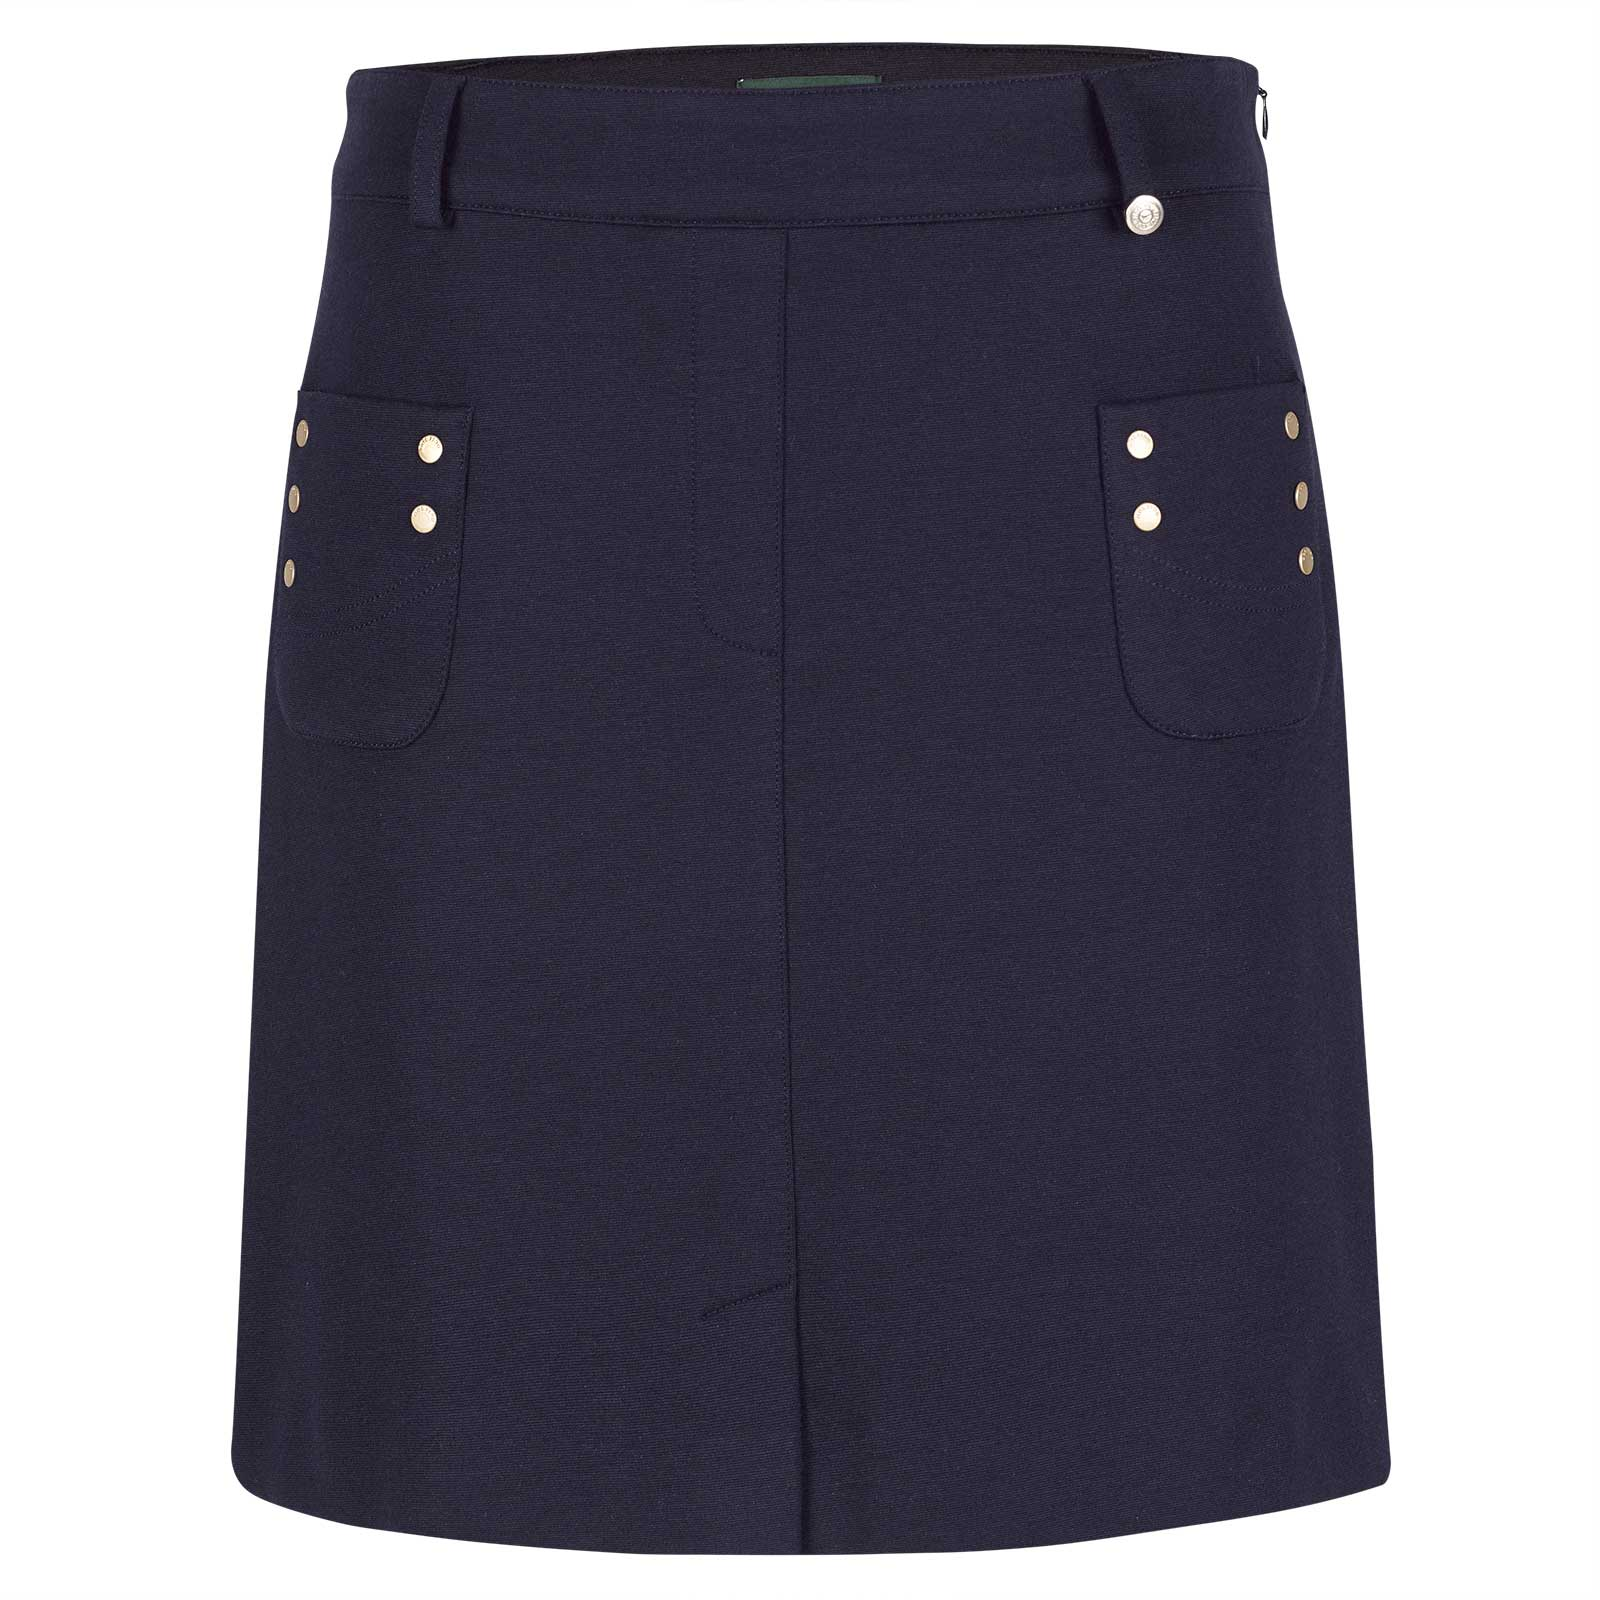 Ladies' medium length golf skort